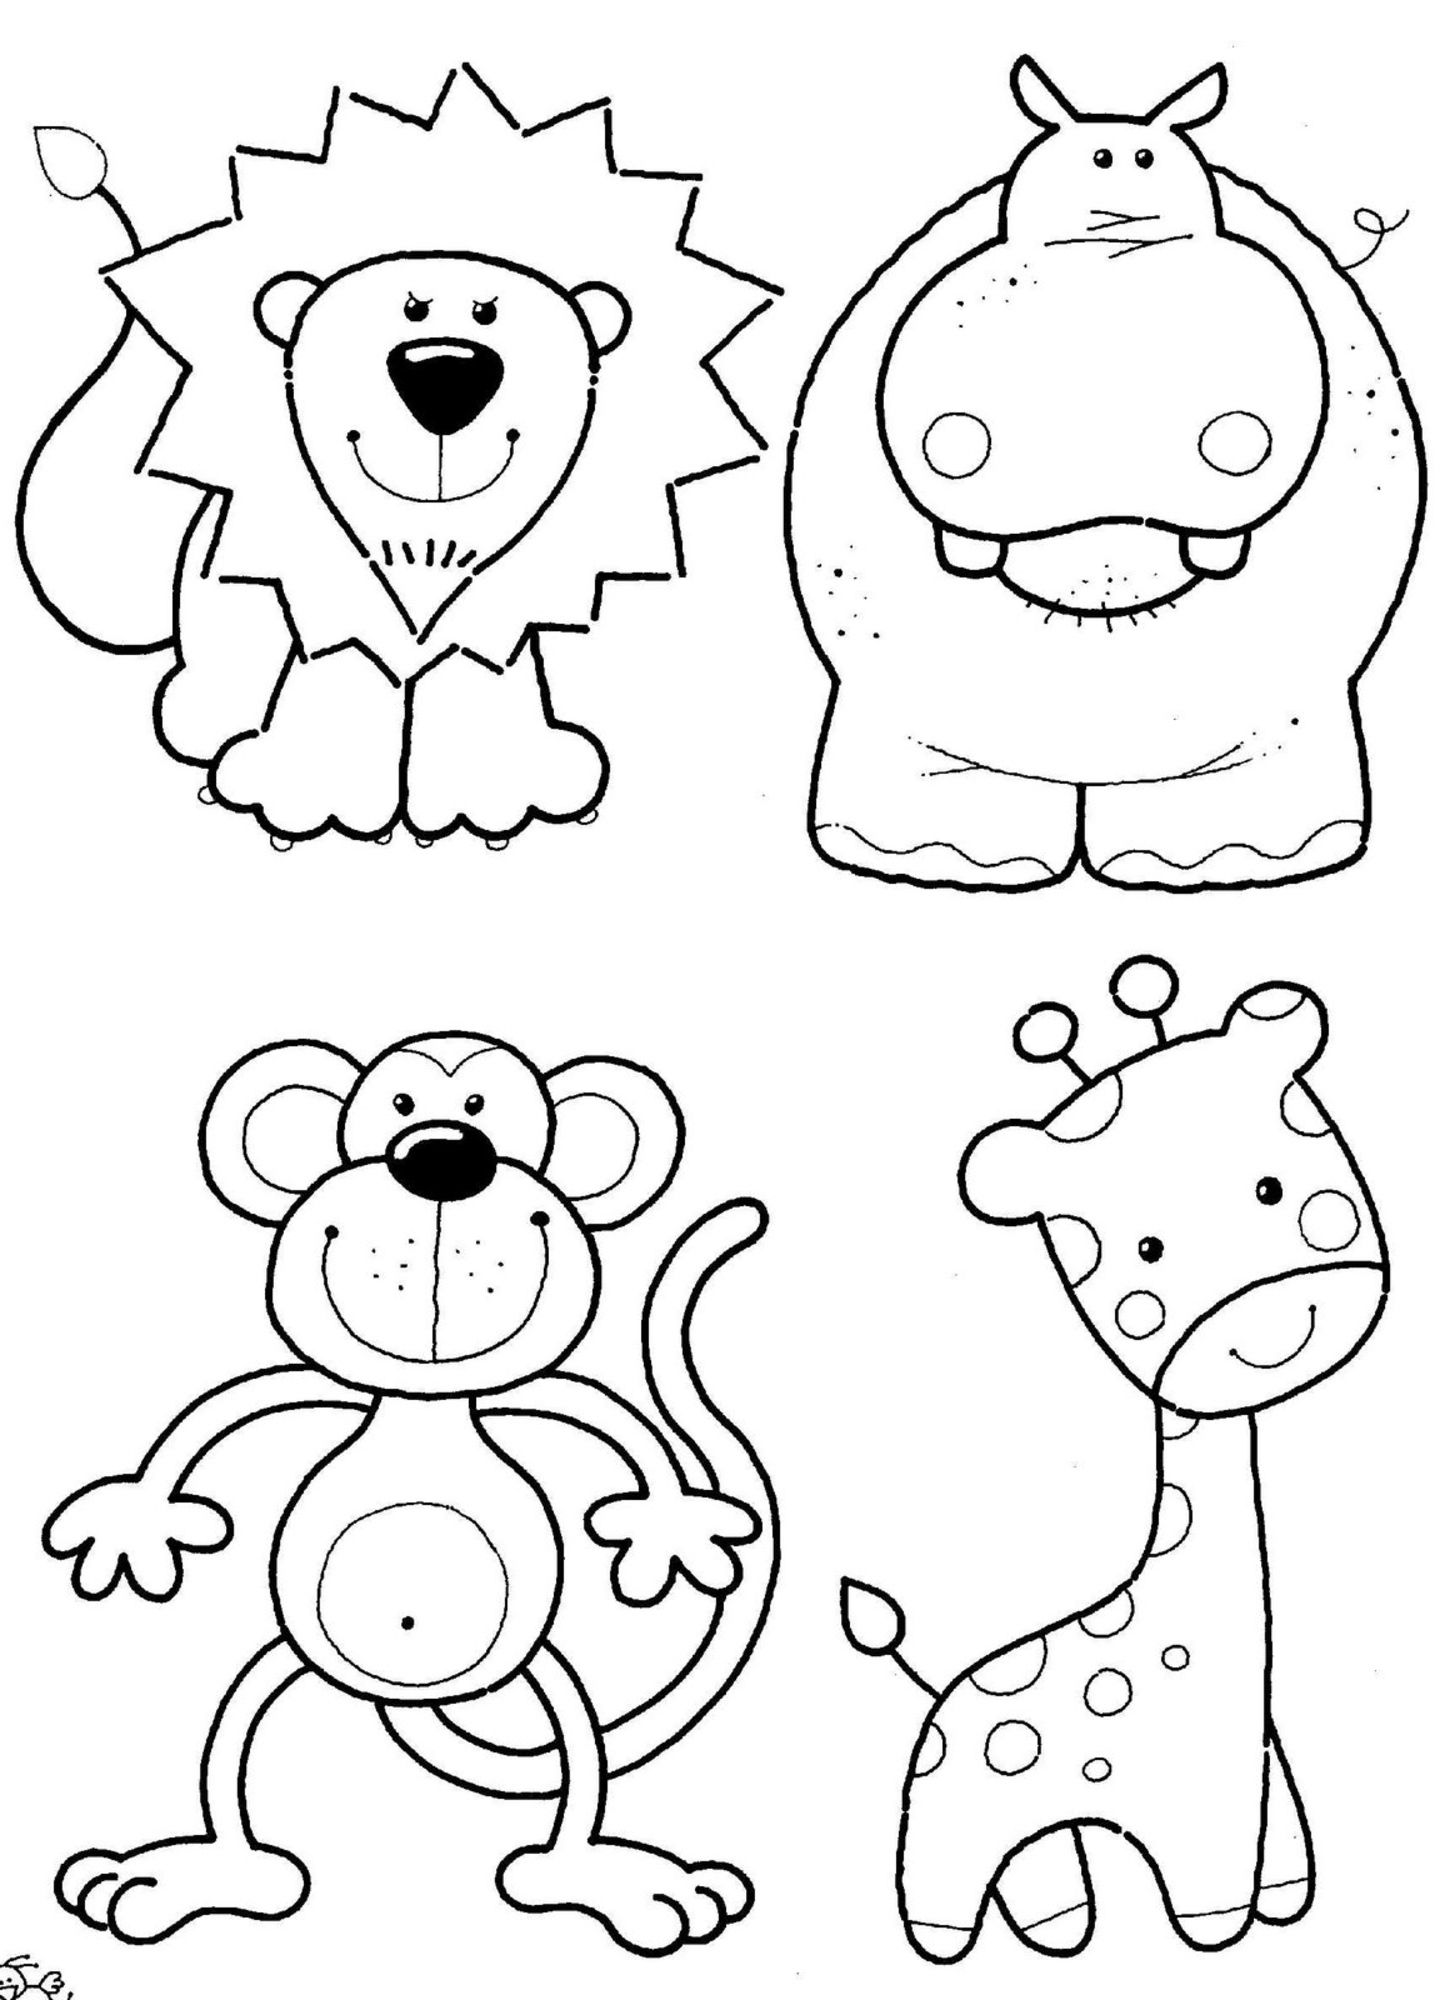 Zoo Animals Colouring Google Search Zoo Animal Coloring Pages Farm Animal Coloring Pages Animal Coloring Pages